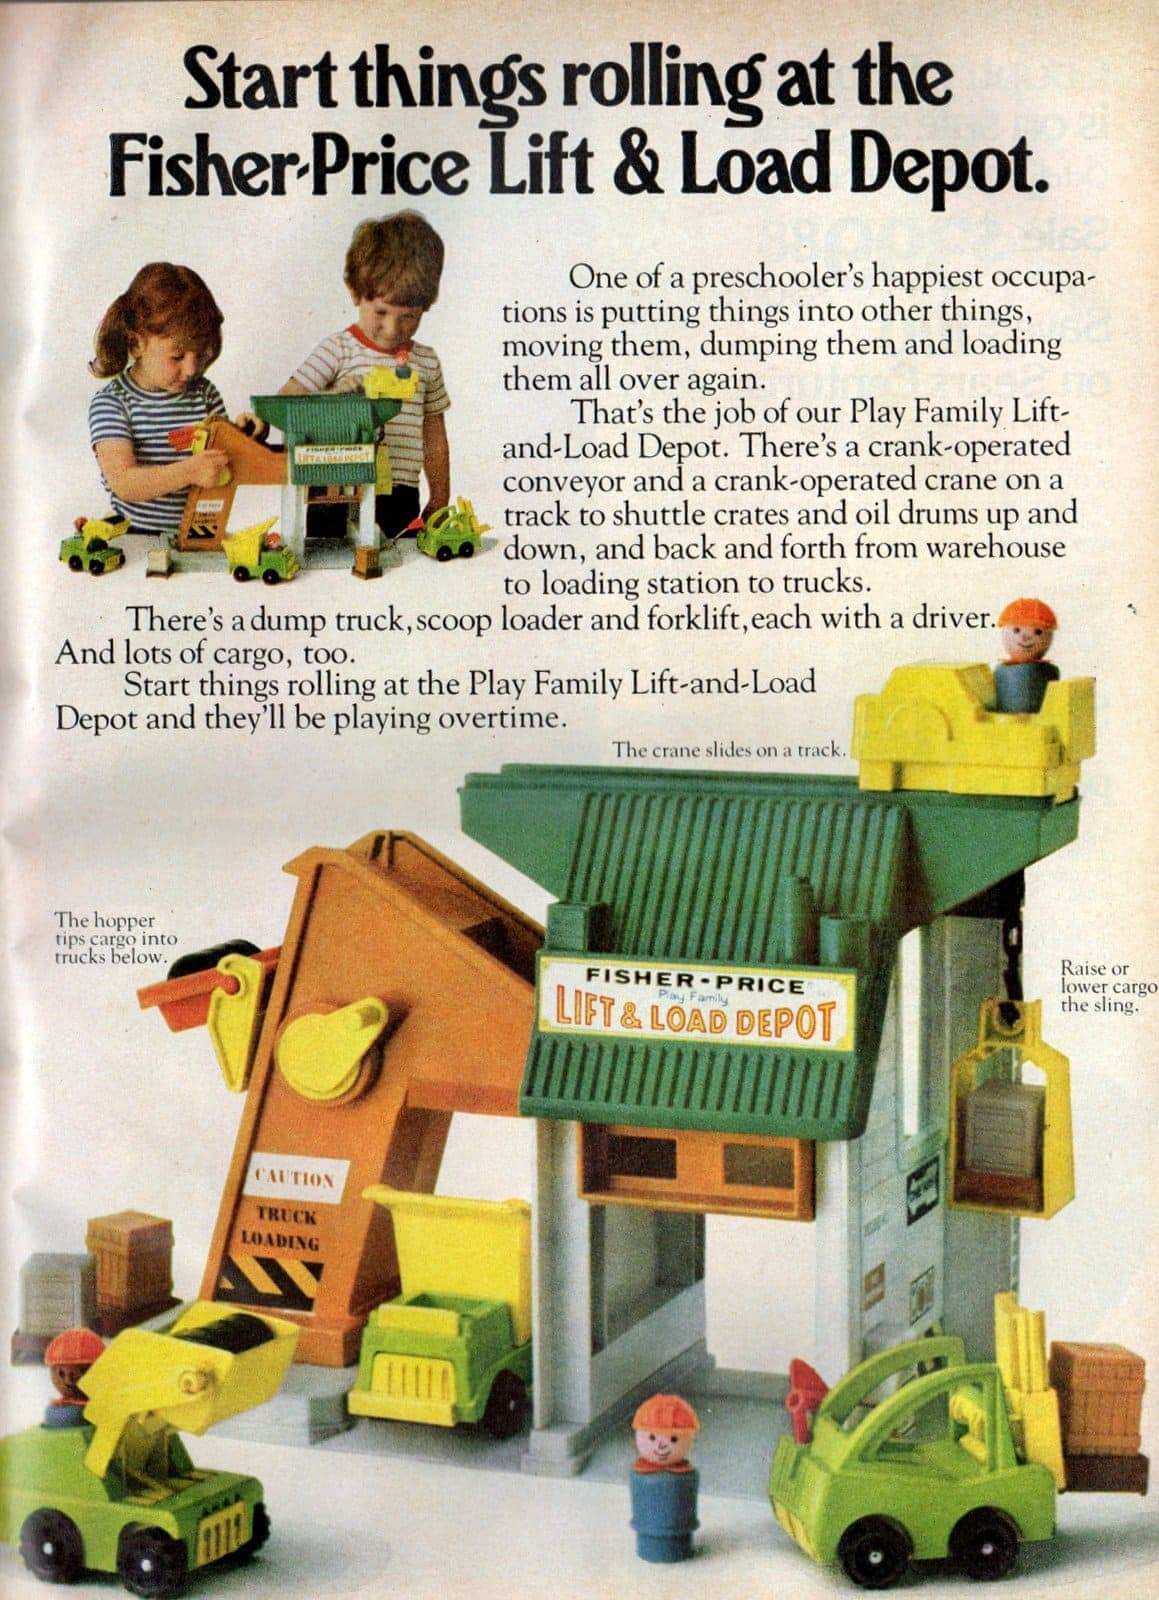 Fisher-Price Play Family Lift & Load Depot (1977)